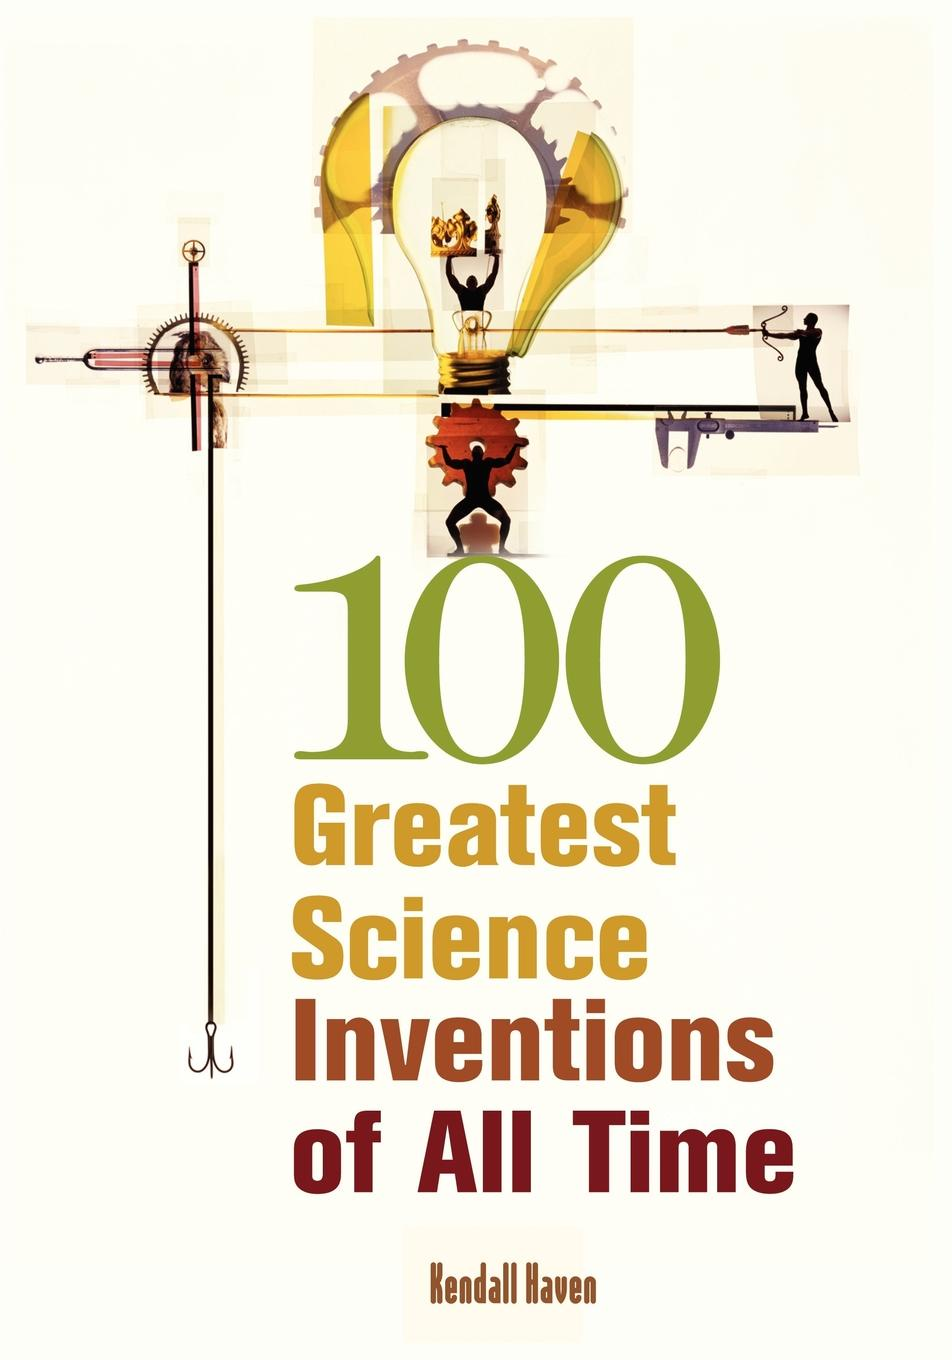 Kendall Haven 100 Greatest Science Inventions of All Time blender 50 worst songs of all time